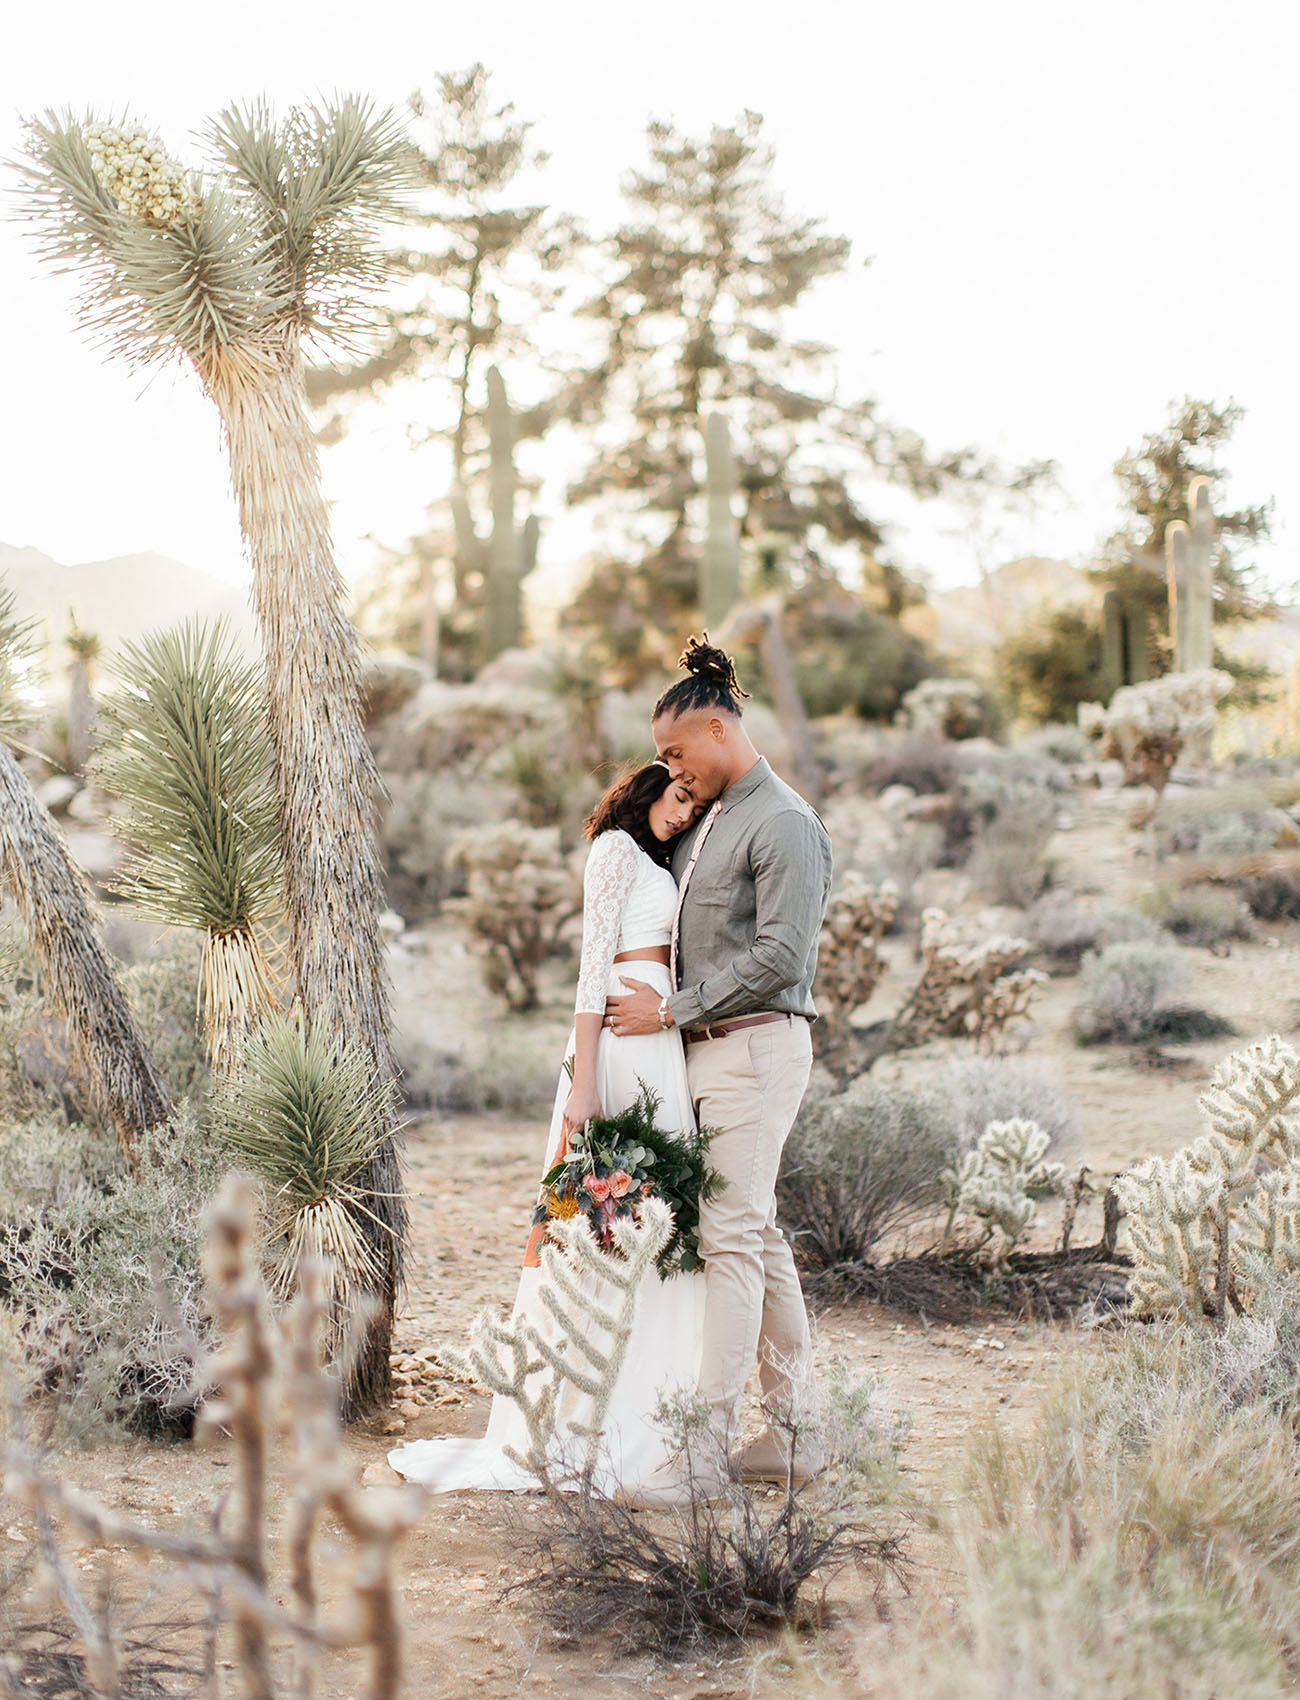 Joshua Tree isn't just a U2 album, its a land full of these unique trees and a great elopement destination for adventurous couples